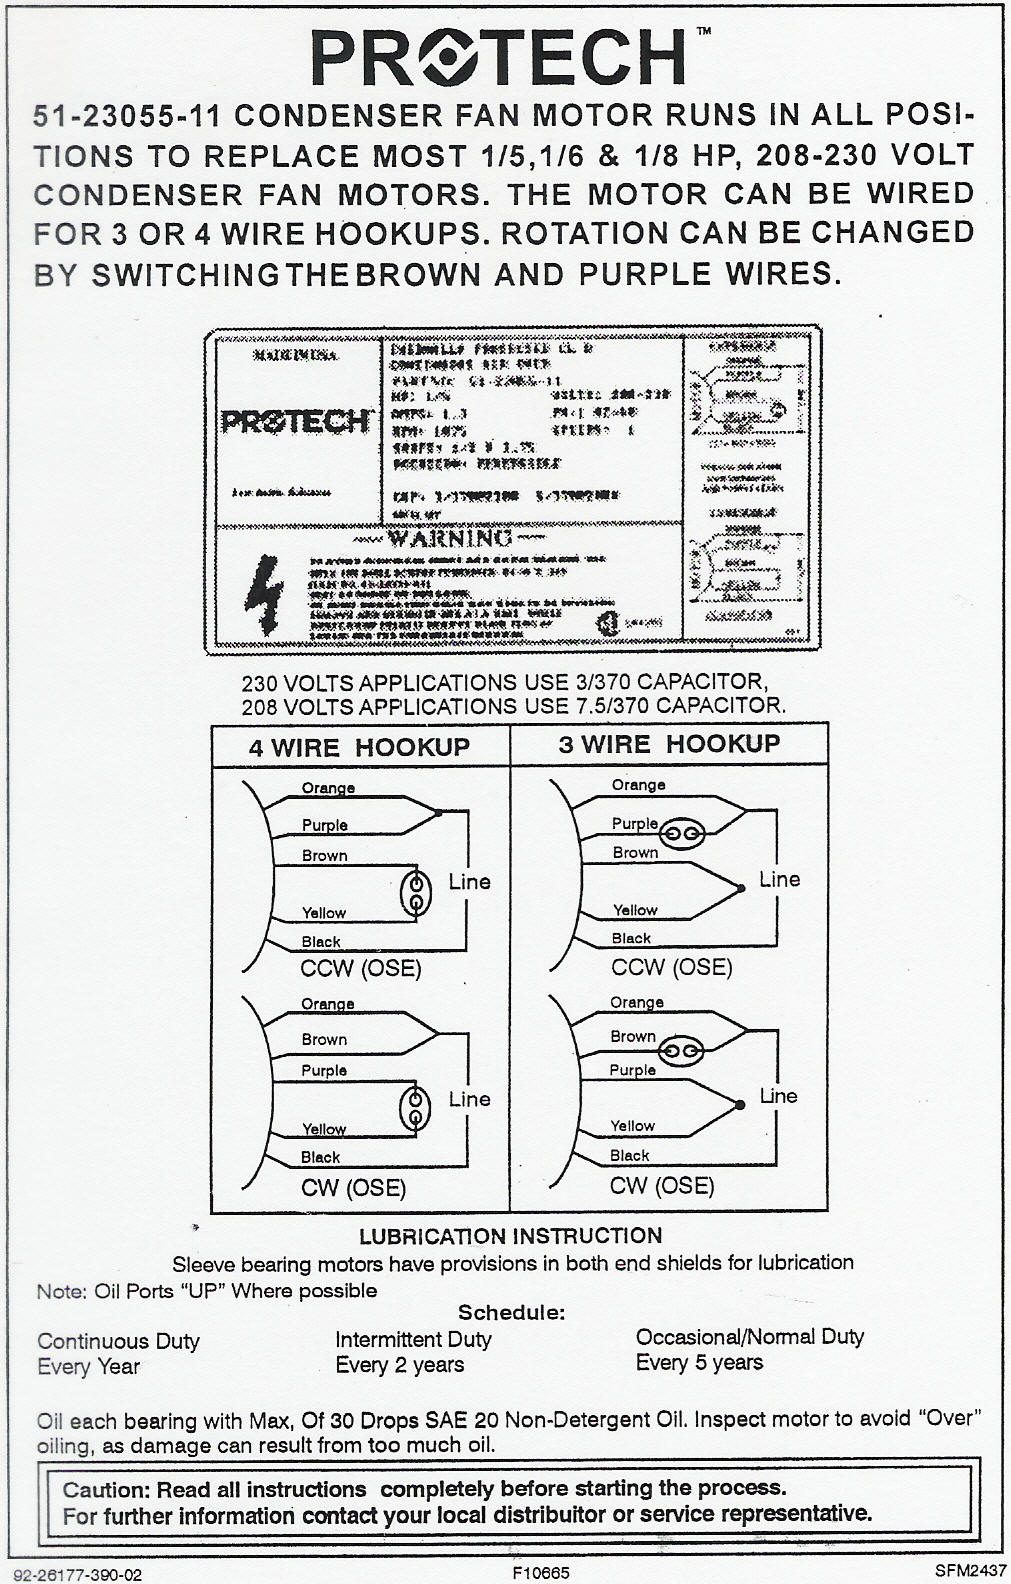 51 23055 11 wiring diagram rheem ruud condenser fan motor 51 23055 11 wiring diagram Basic Electrical Wiring Diagrams at fashall.co